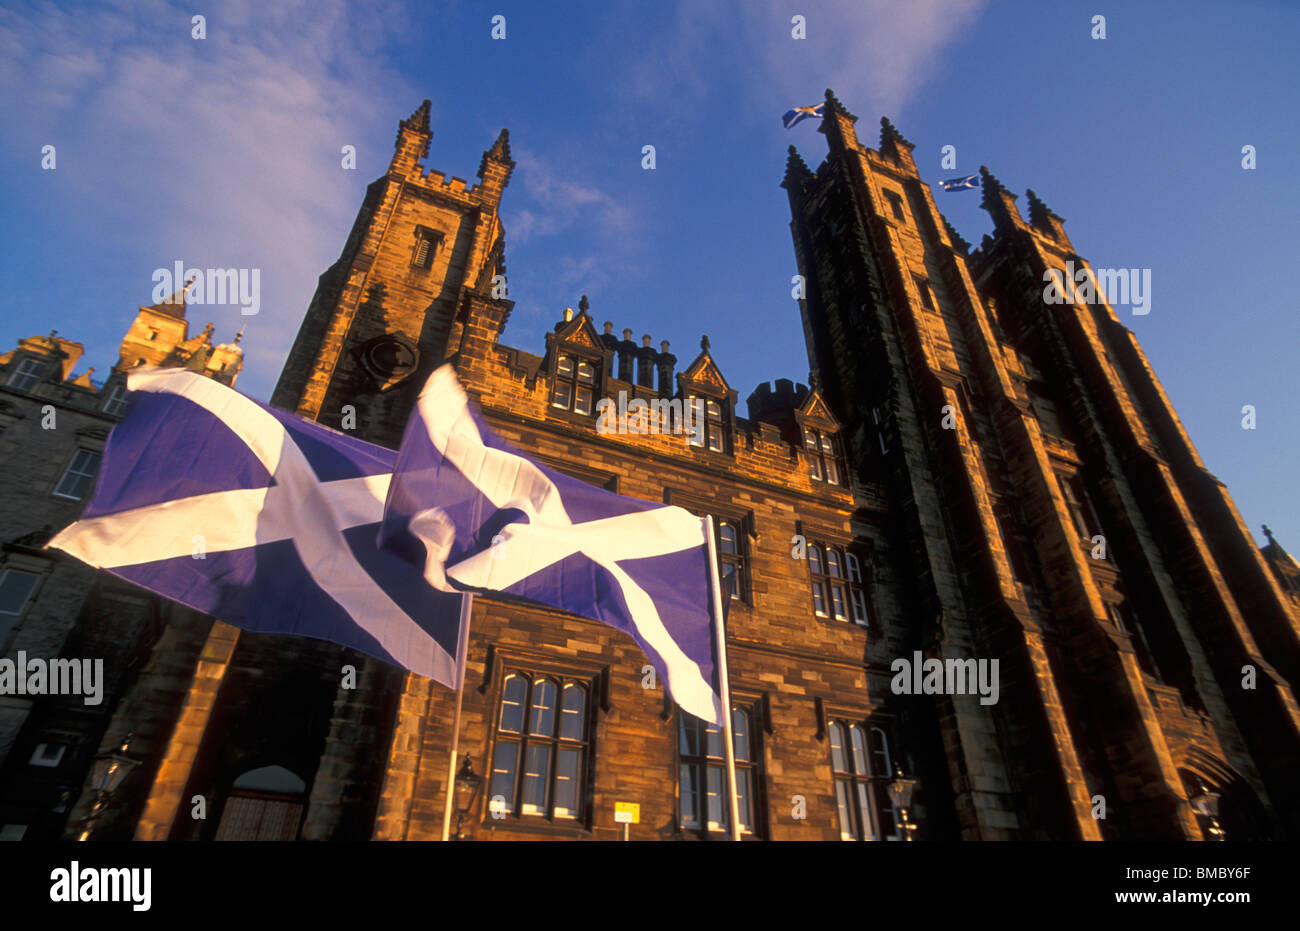 University of edinburgh university Edinburgh university buildings with st andrews flag or saltaire Edinburgh Midlothian - Stock Image